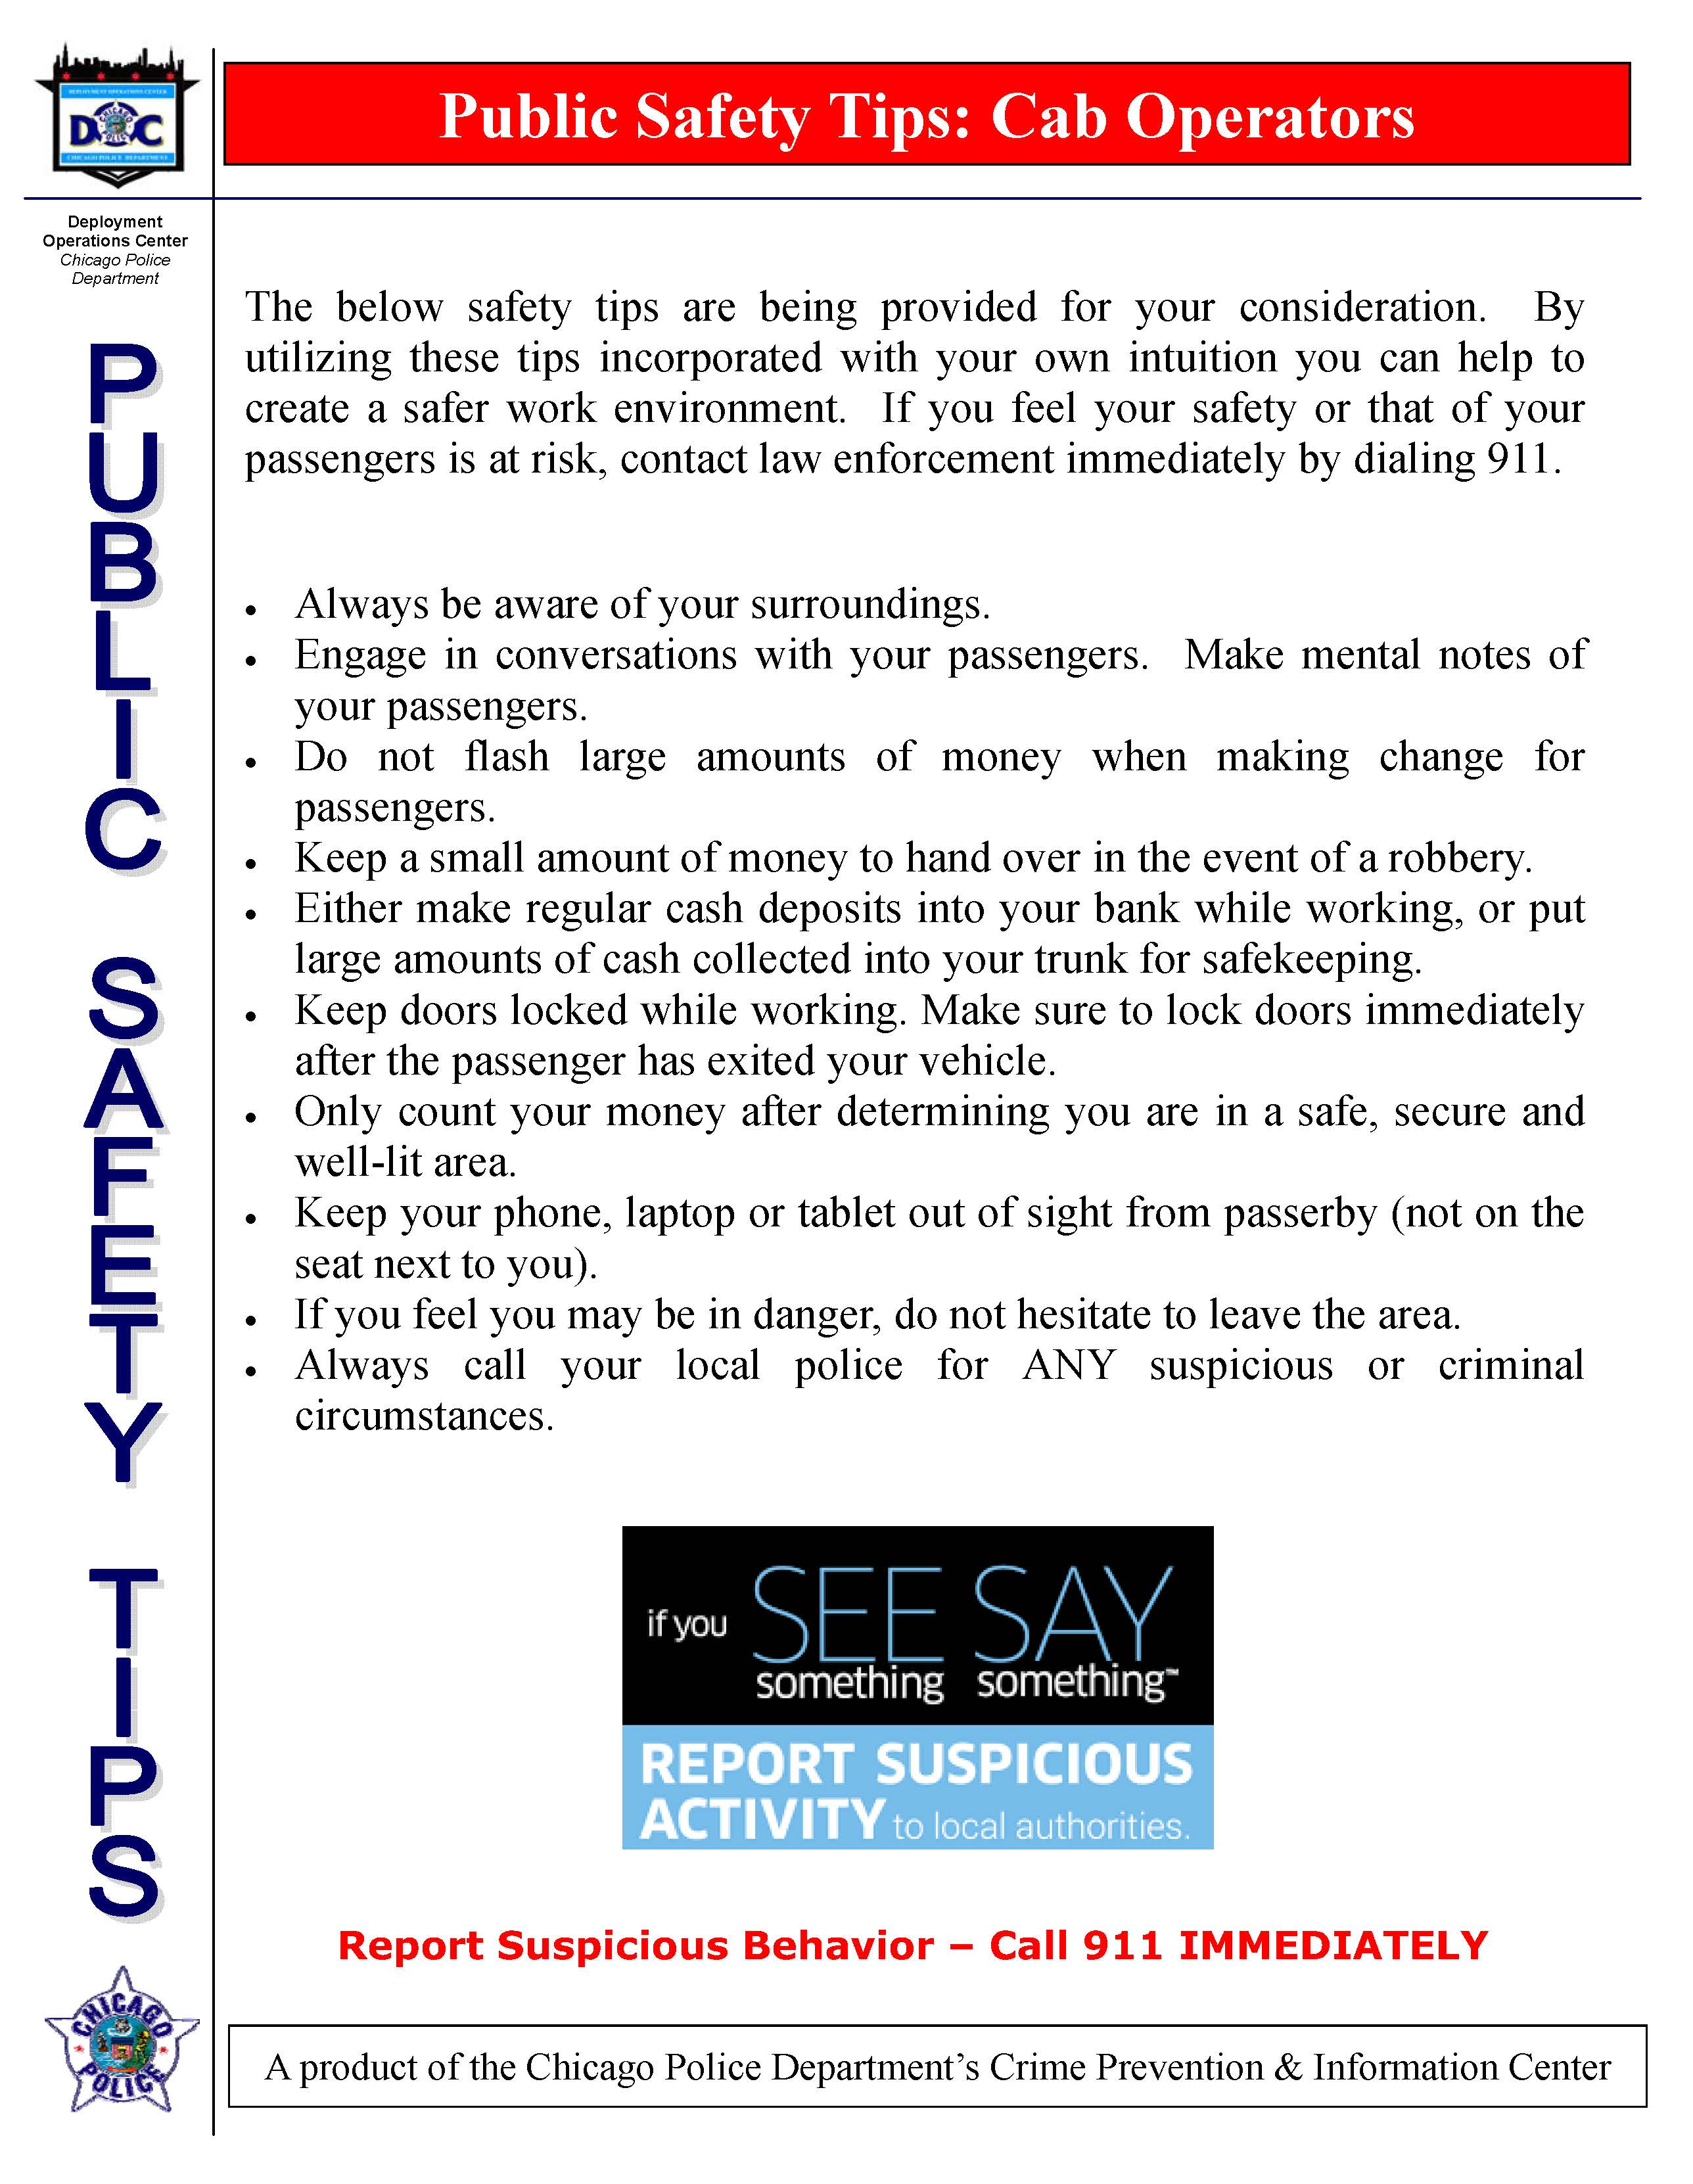 Public Safety Tips - Cab Operators